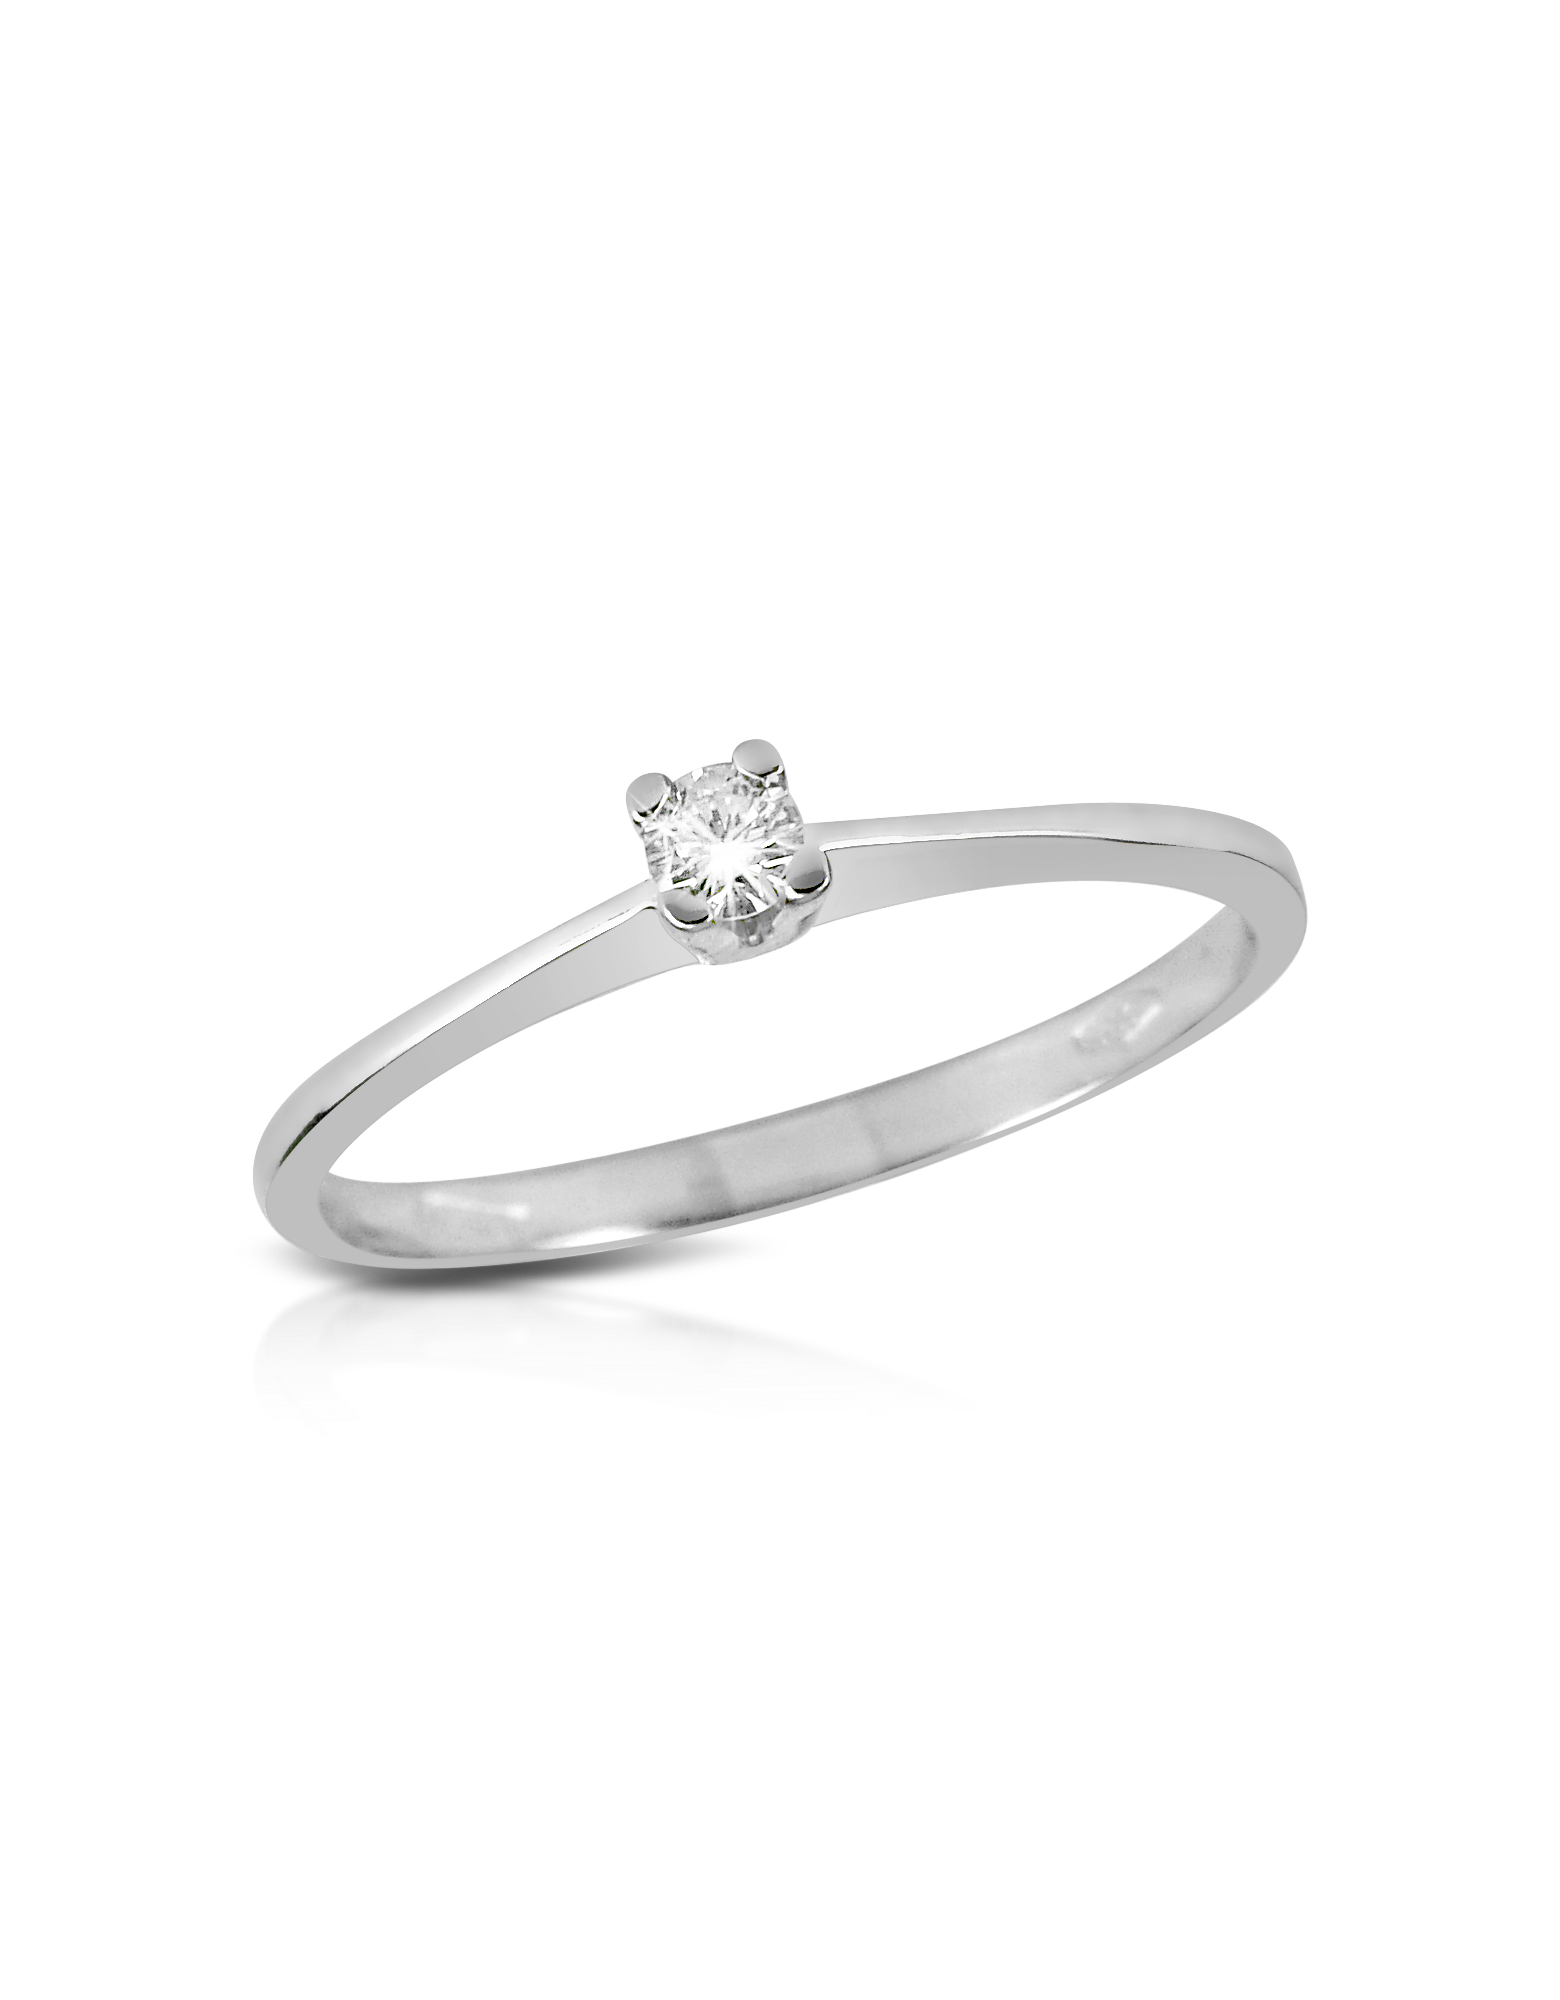 Image of 0.04 ct Prong-Set Diamond Solitaire Ring